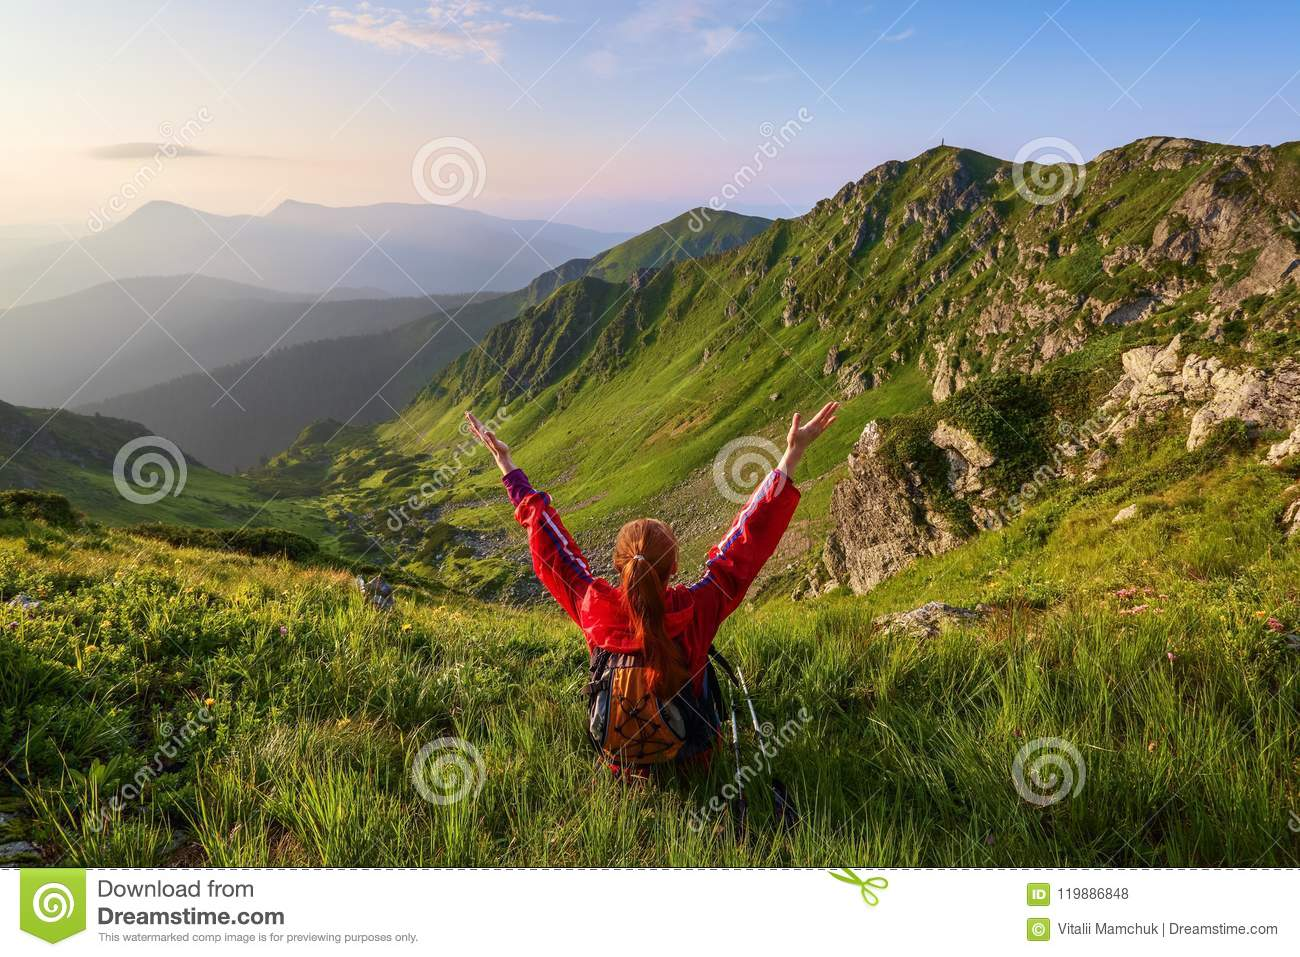 The tourist girl with back sack and tracking sticks sits on the lawn. Relaxation. Mountain landscapes. Wonderful summer day.